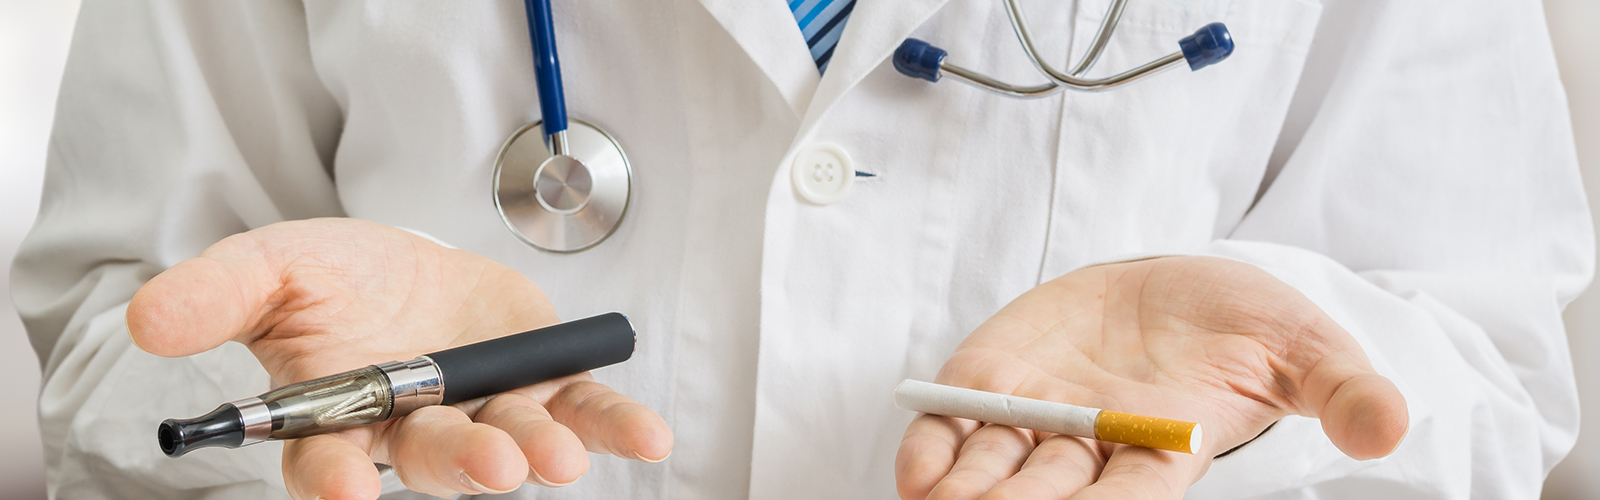 Doctor holds e-cig and cig